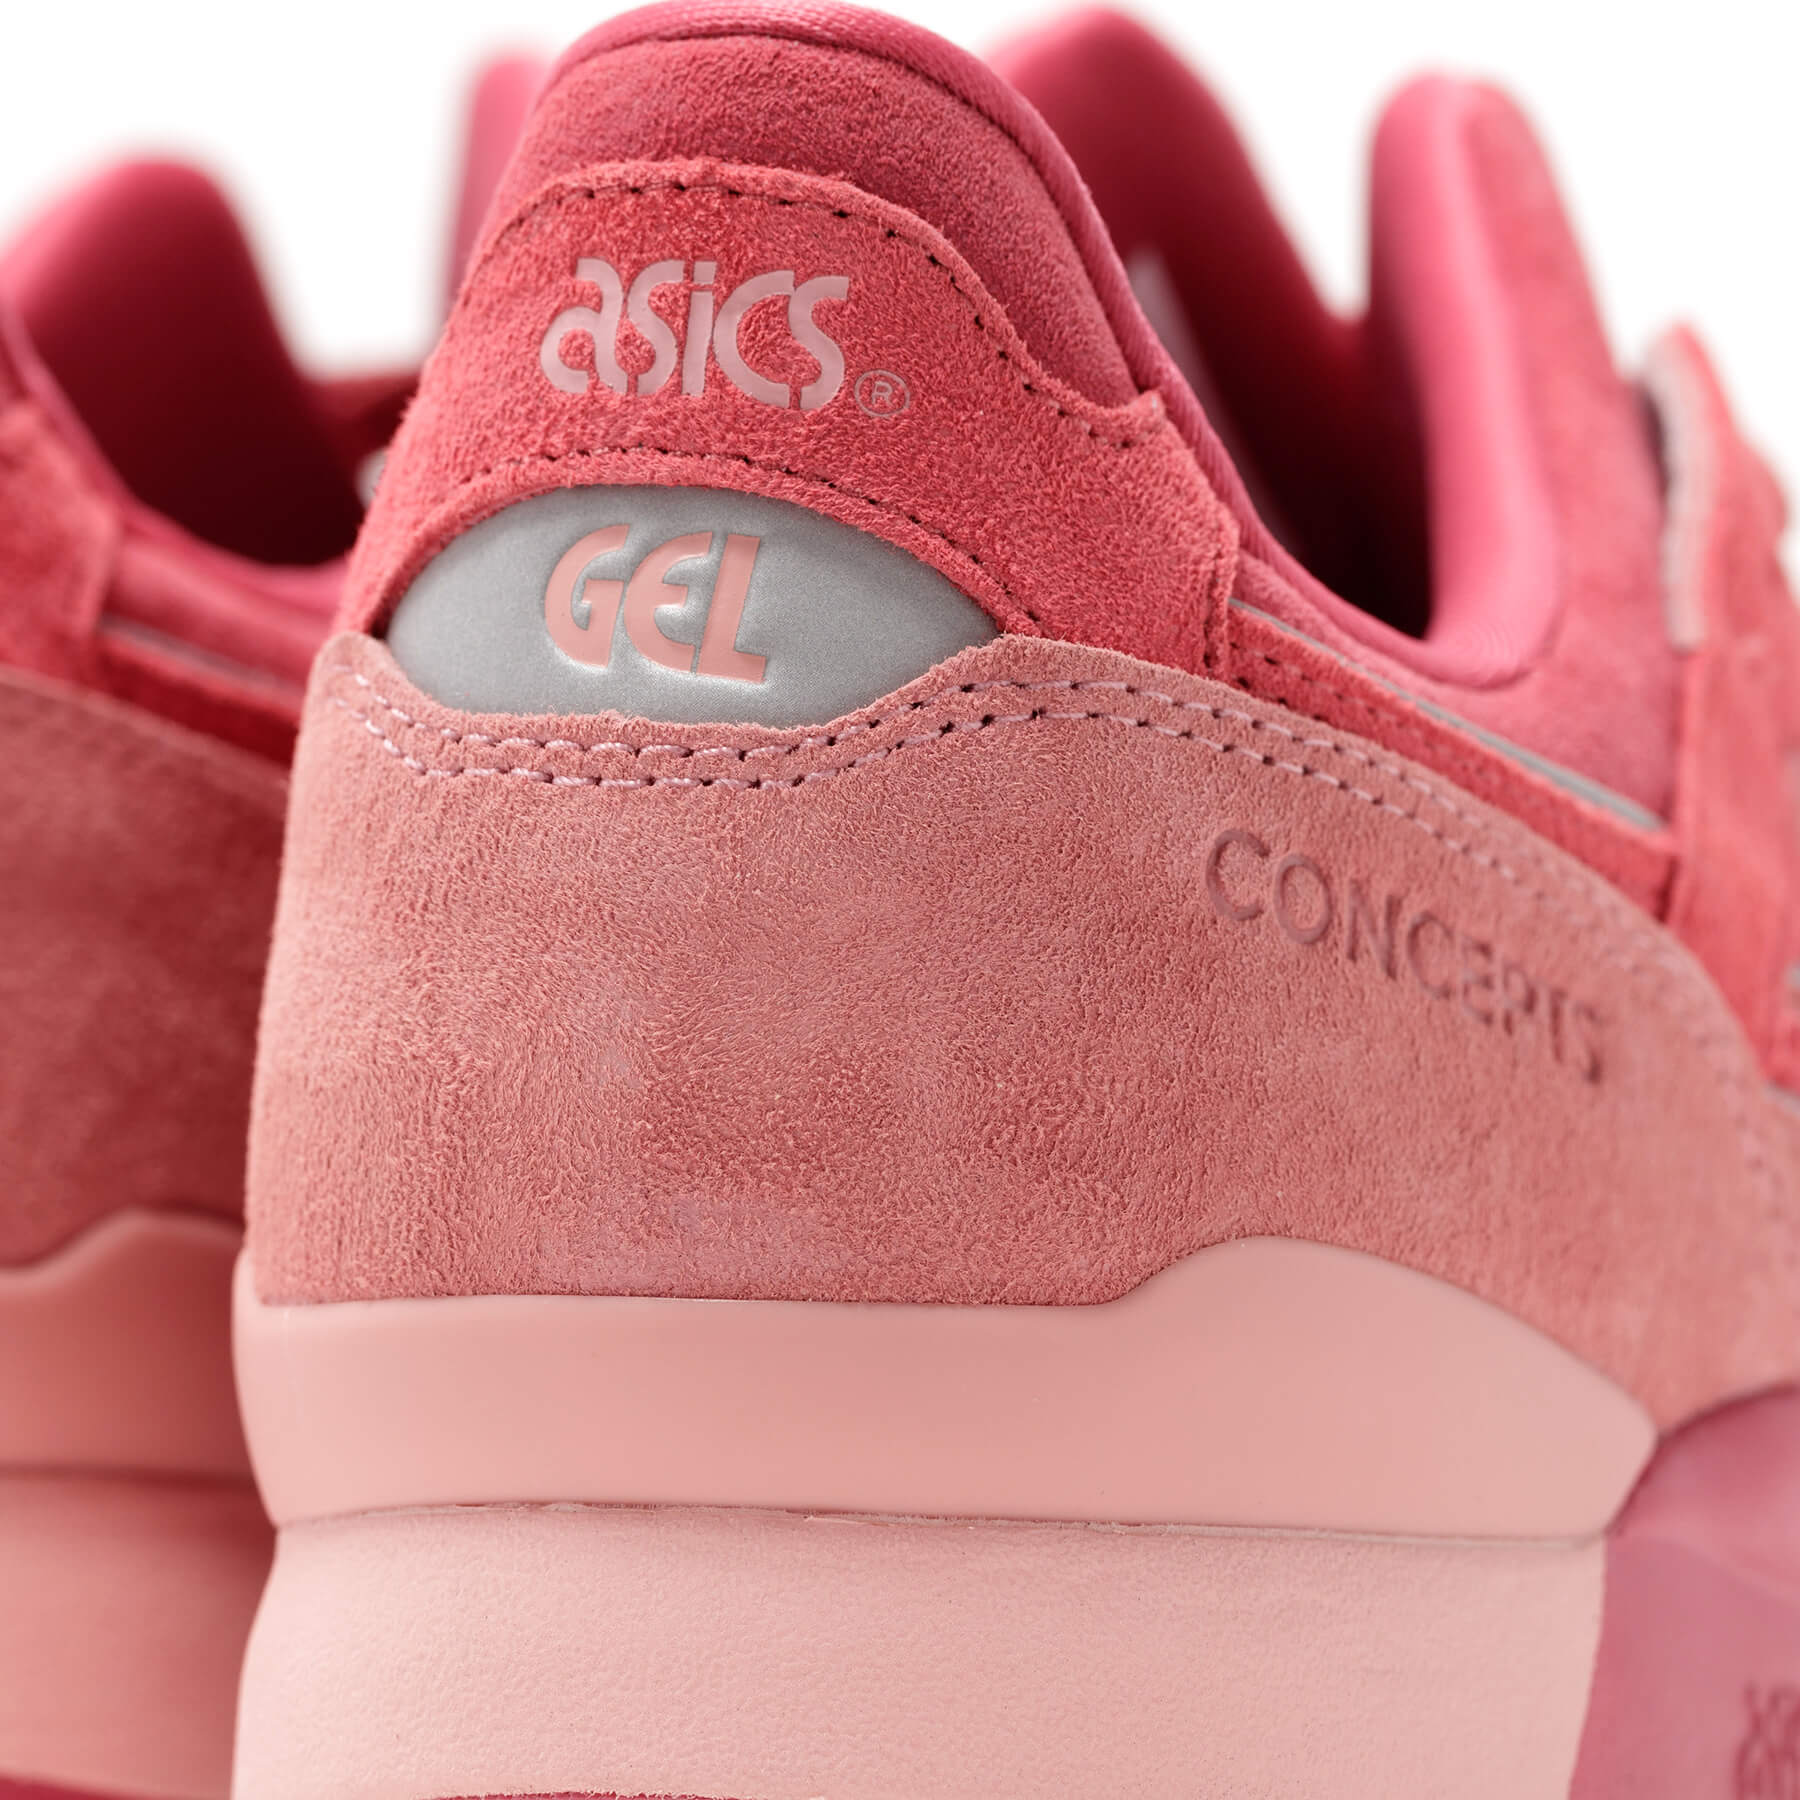 """details - heel of the ASICS SportStyle x Concepts - GEL-LYTE III OG - """"Otoro"""" - 1203A121-700 - Coral Cloud /Pure Silver"""